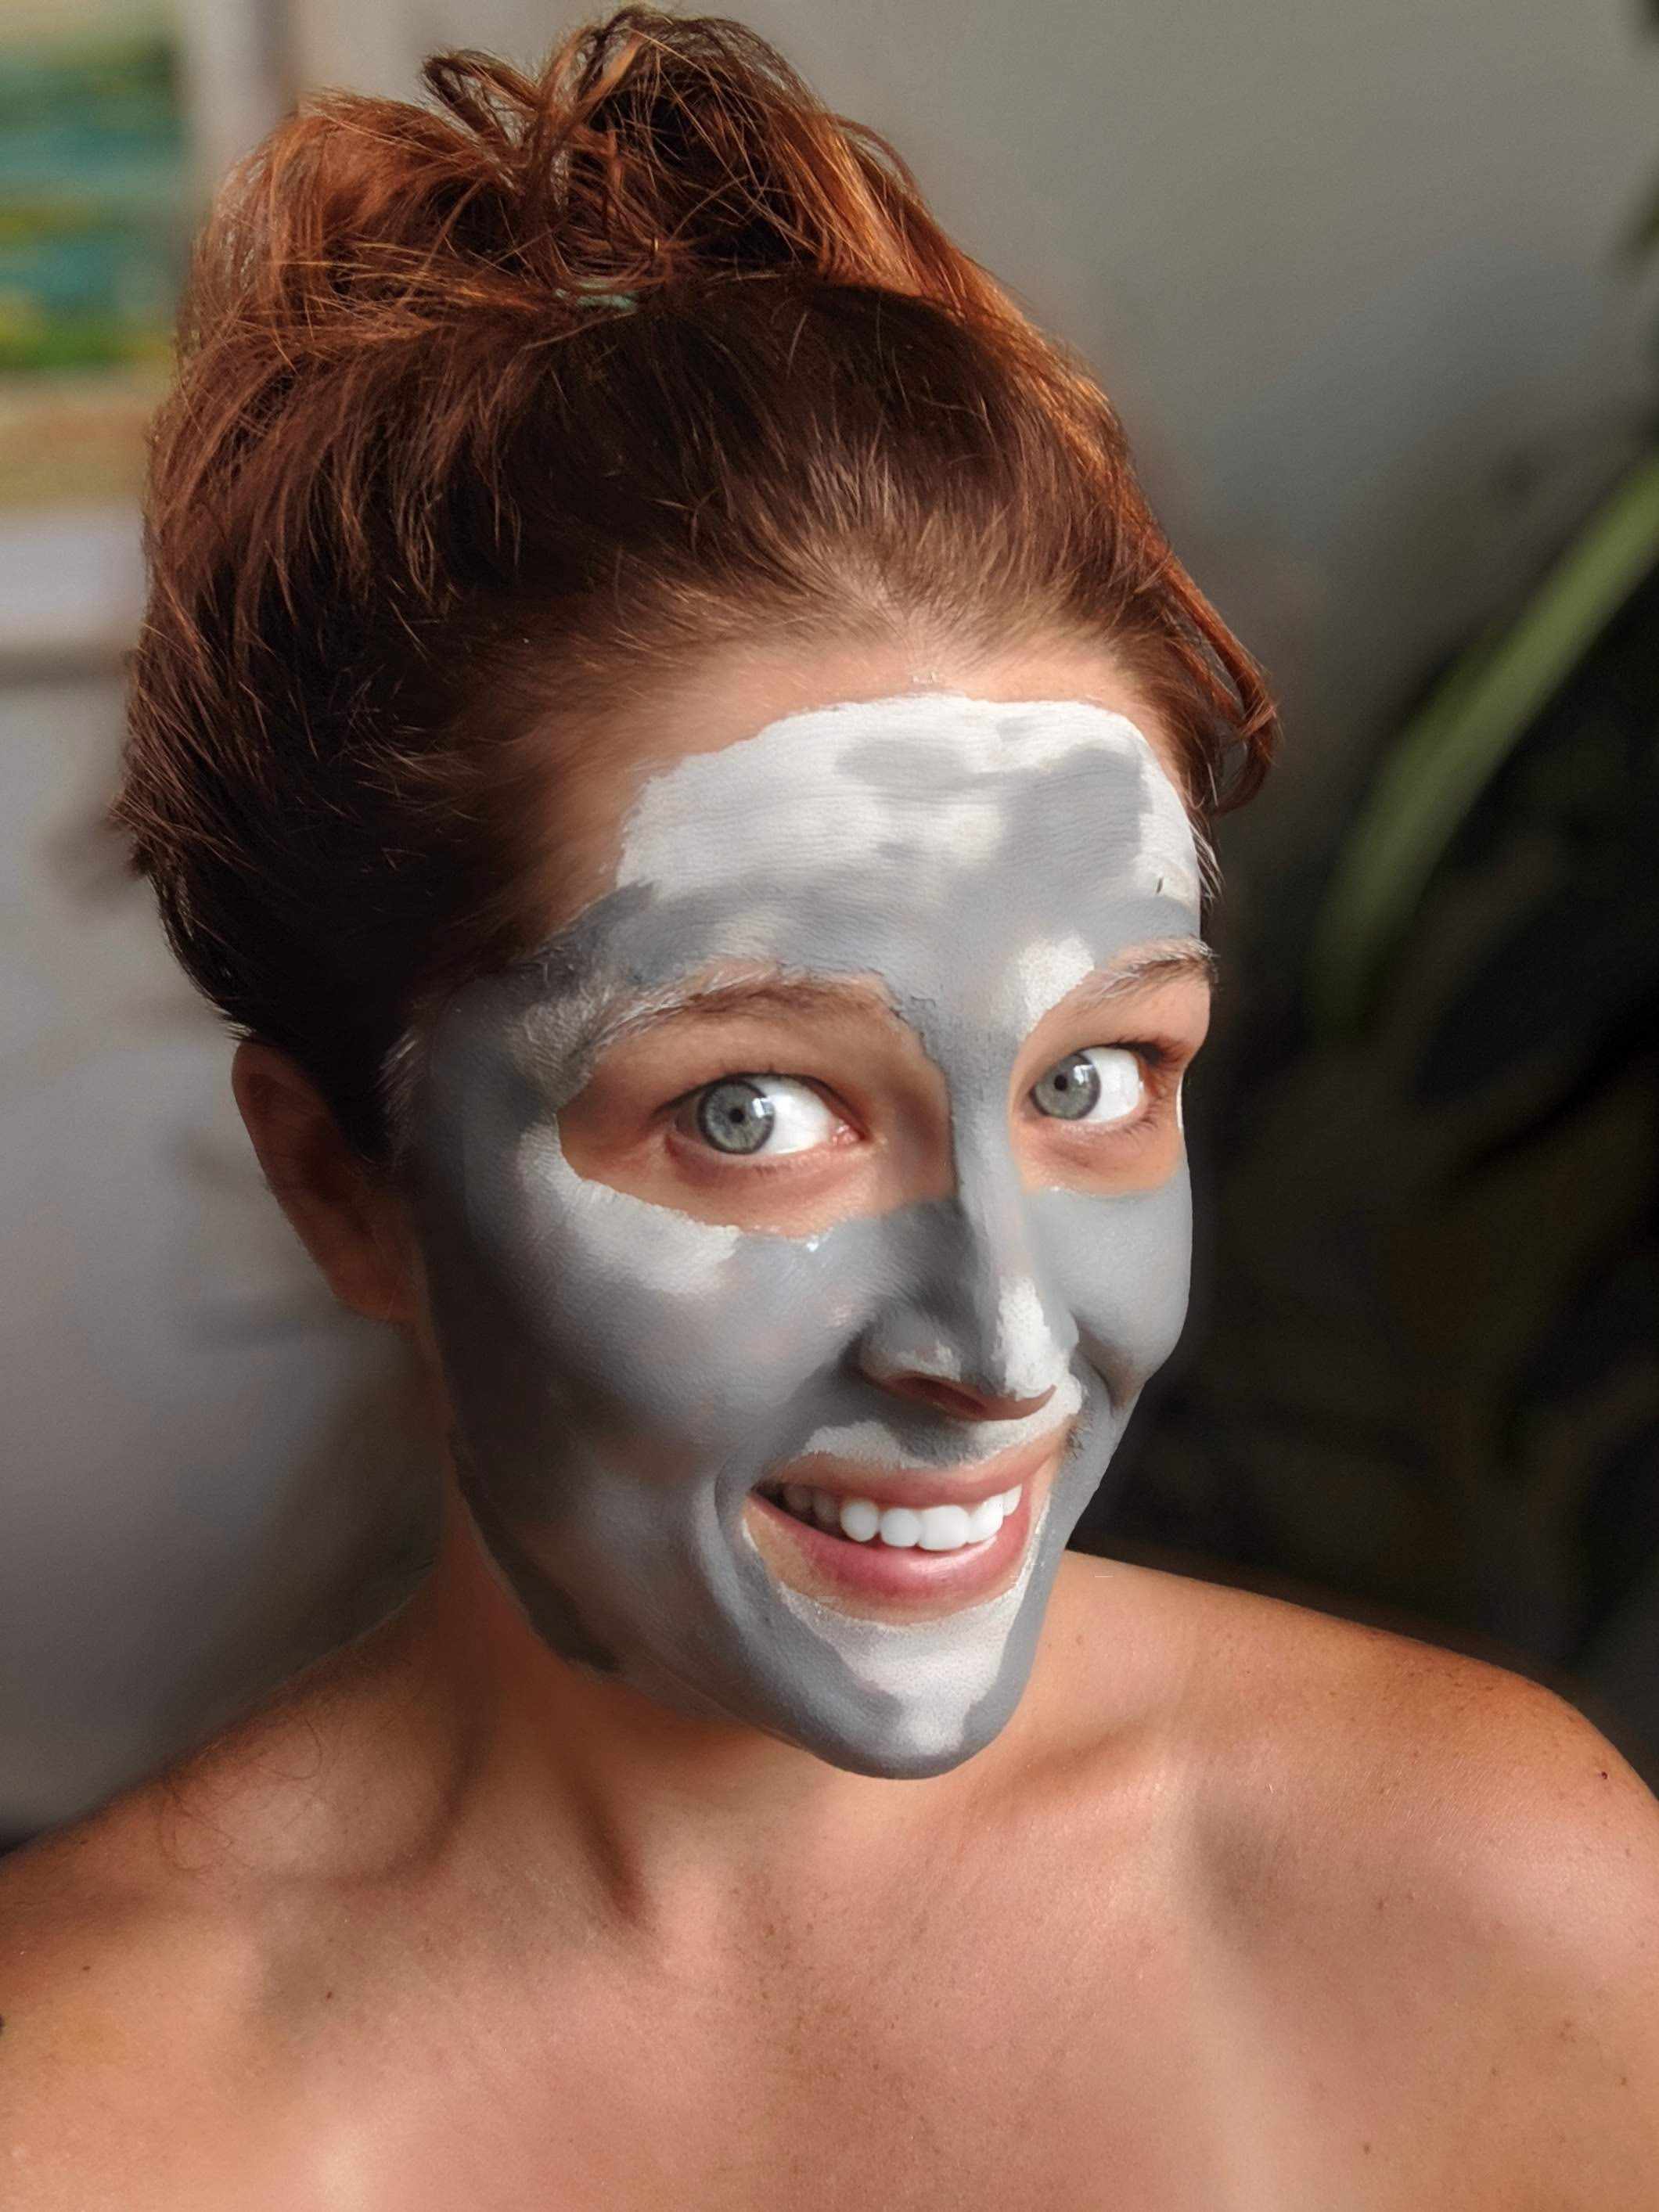 charcoal clay diy face mask on smiling woman's face